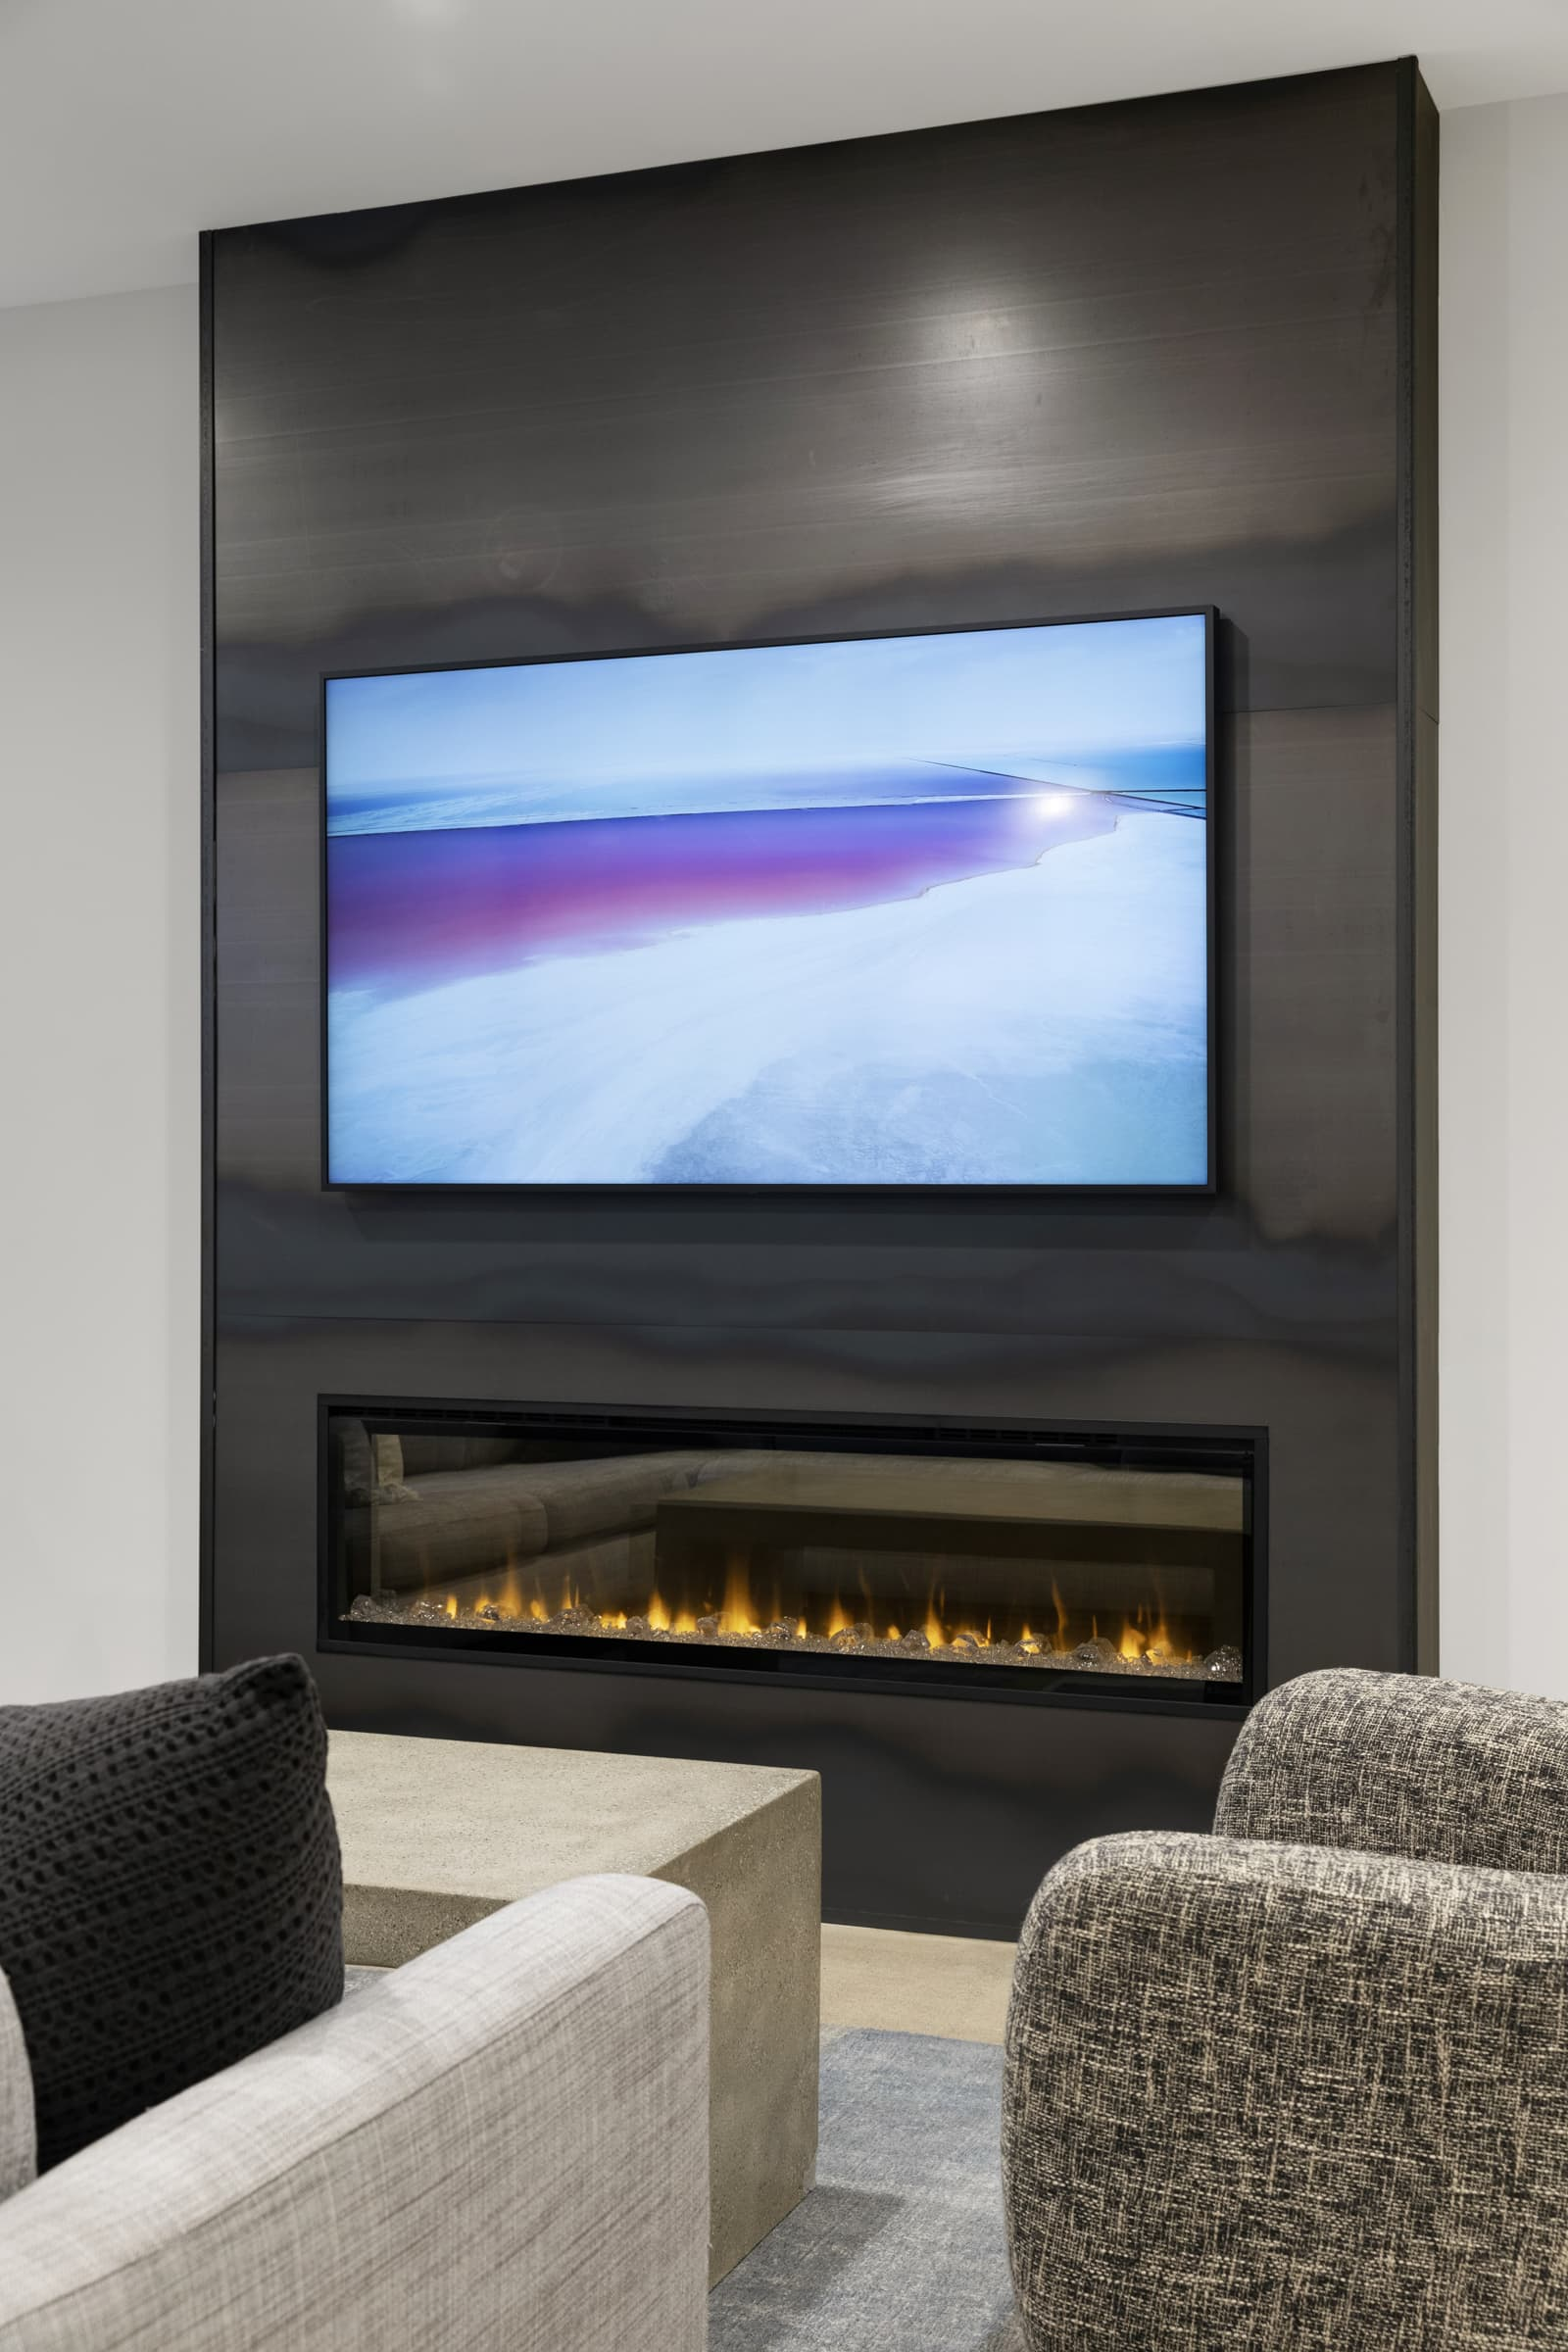 TV in modern home layout